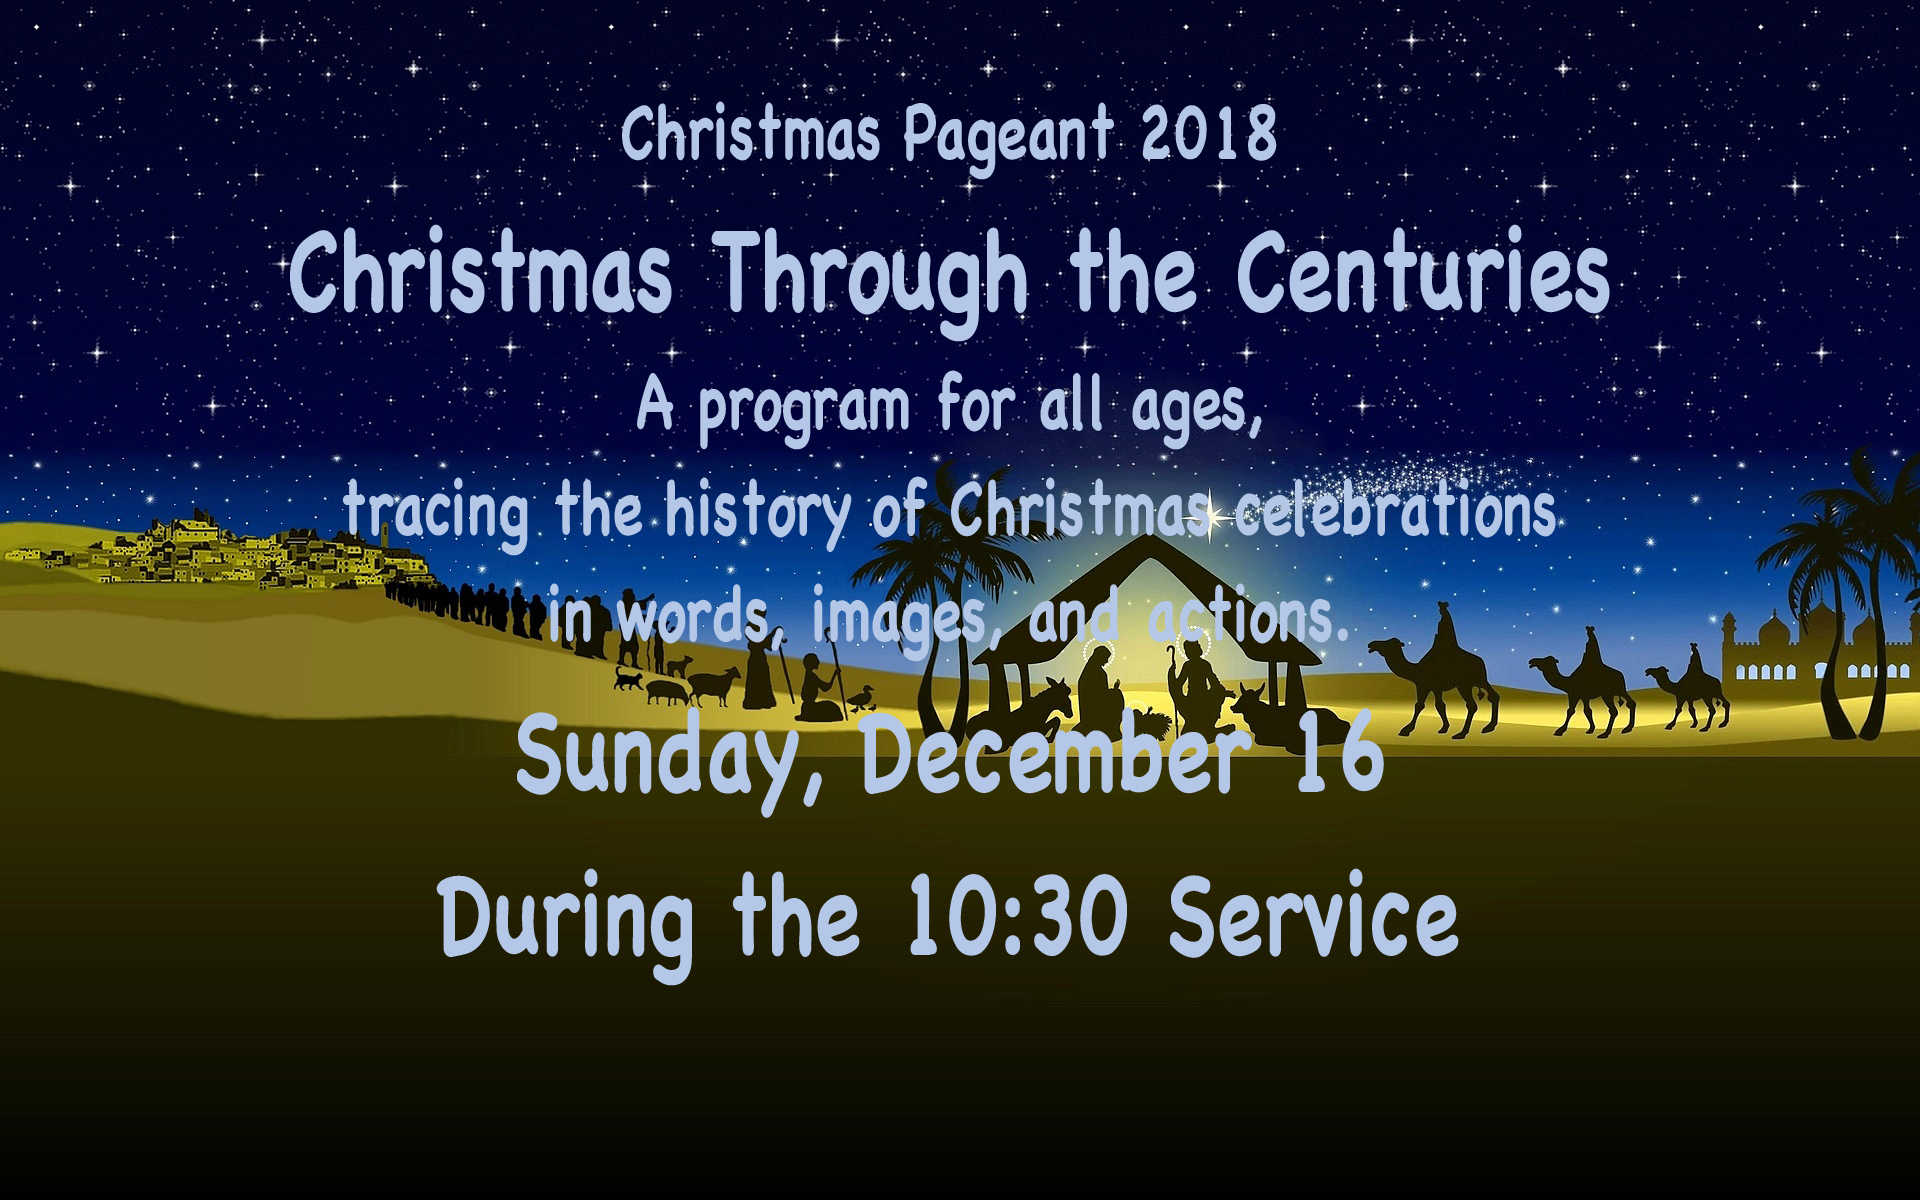 Christmas Pageant.jpg